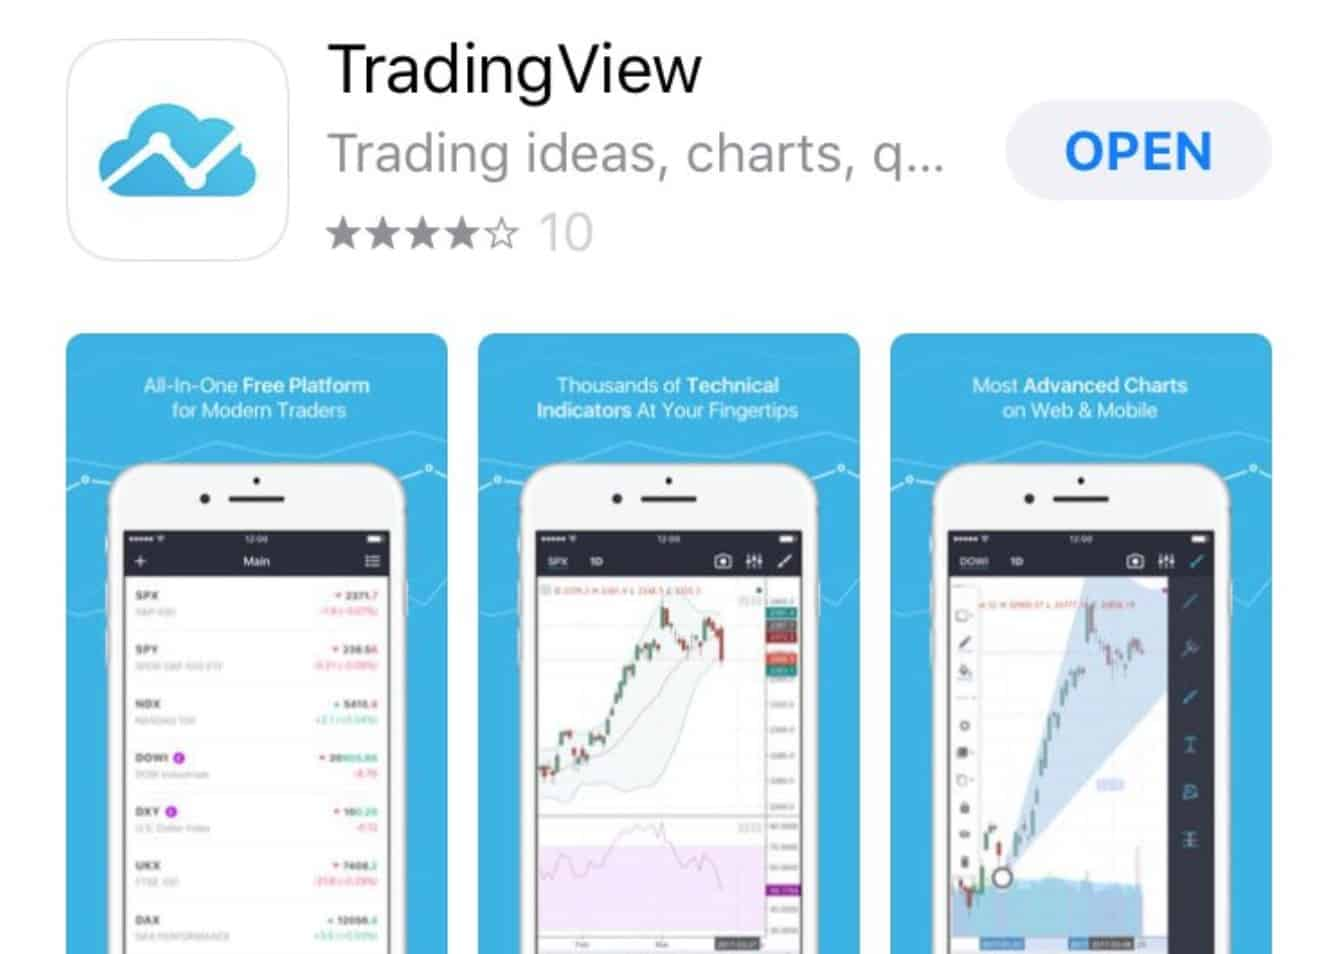 TradingView Review 2021 - Are The Pro Plans Worth It?